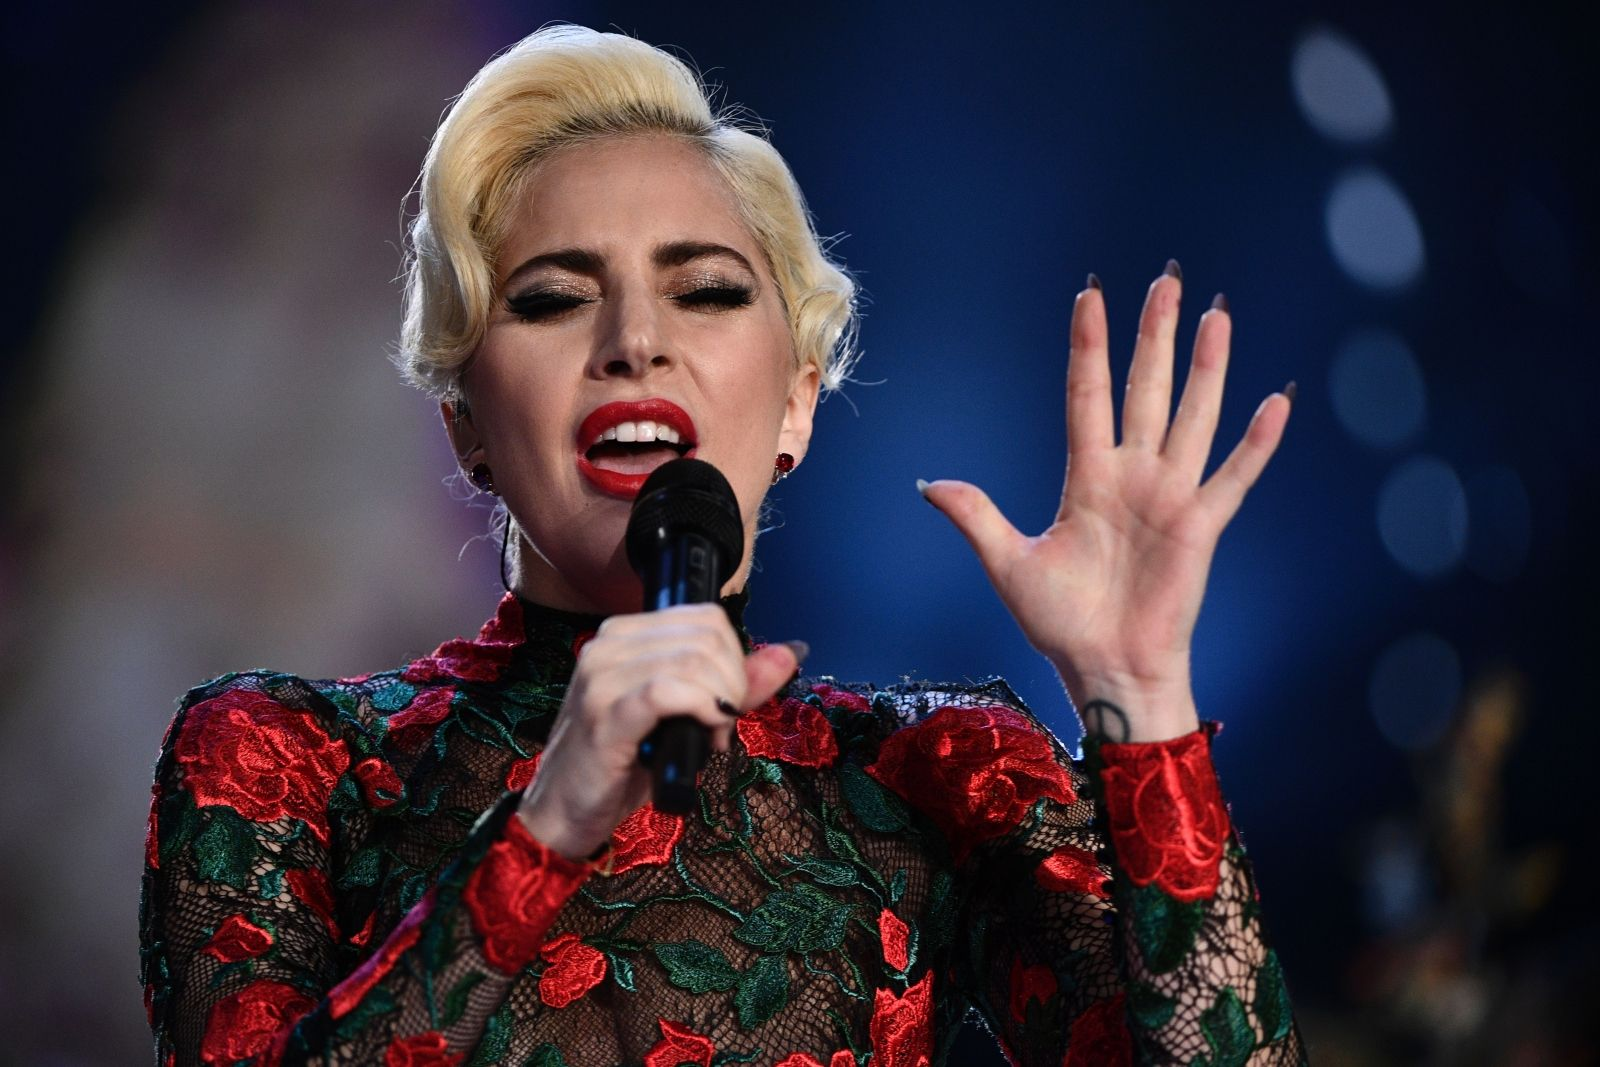 EXCLUSIVE: Lady Gaga Tweets in Sanskrit , making fans into a frenzy